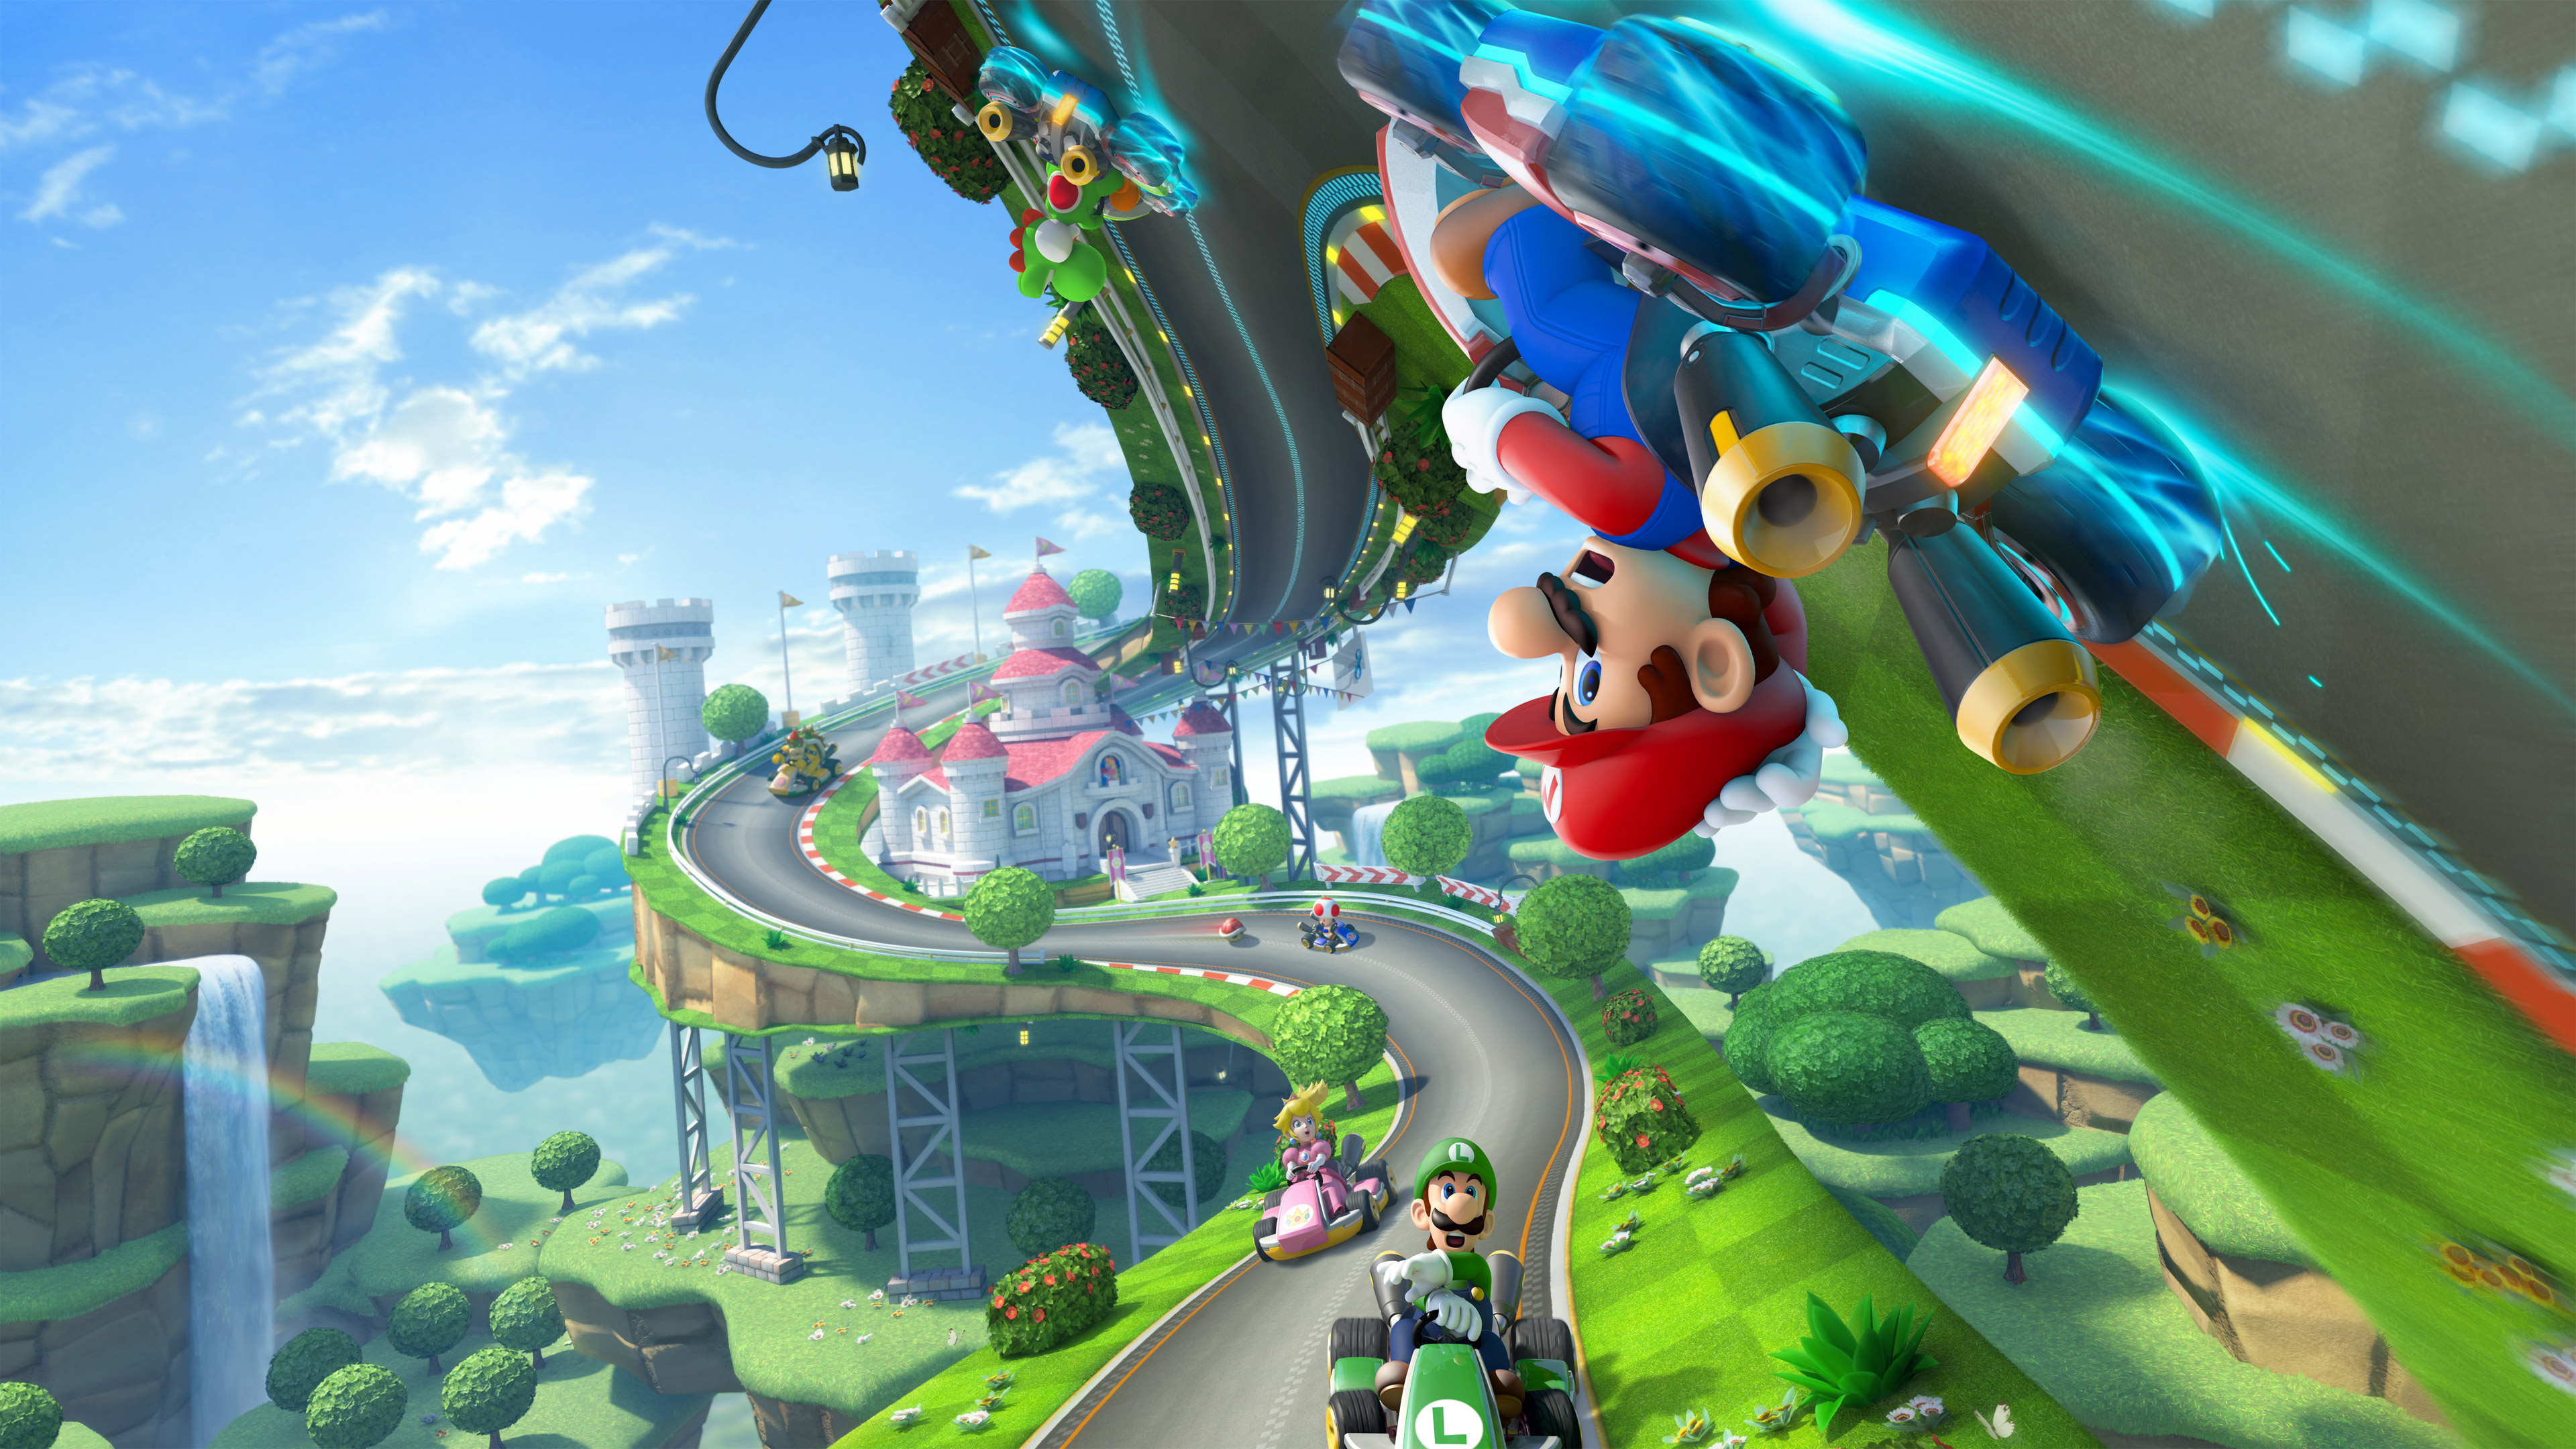 mario kart 8, hd games, 4k wallpapers, images, backgrounds, photos